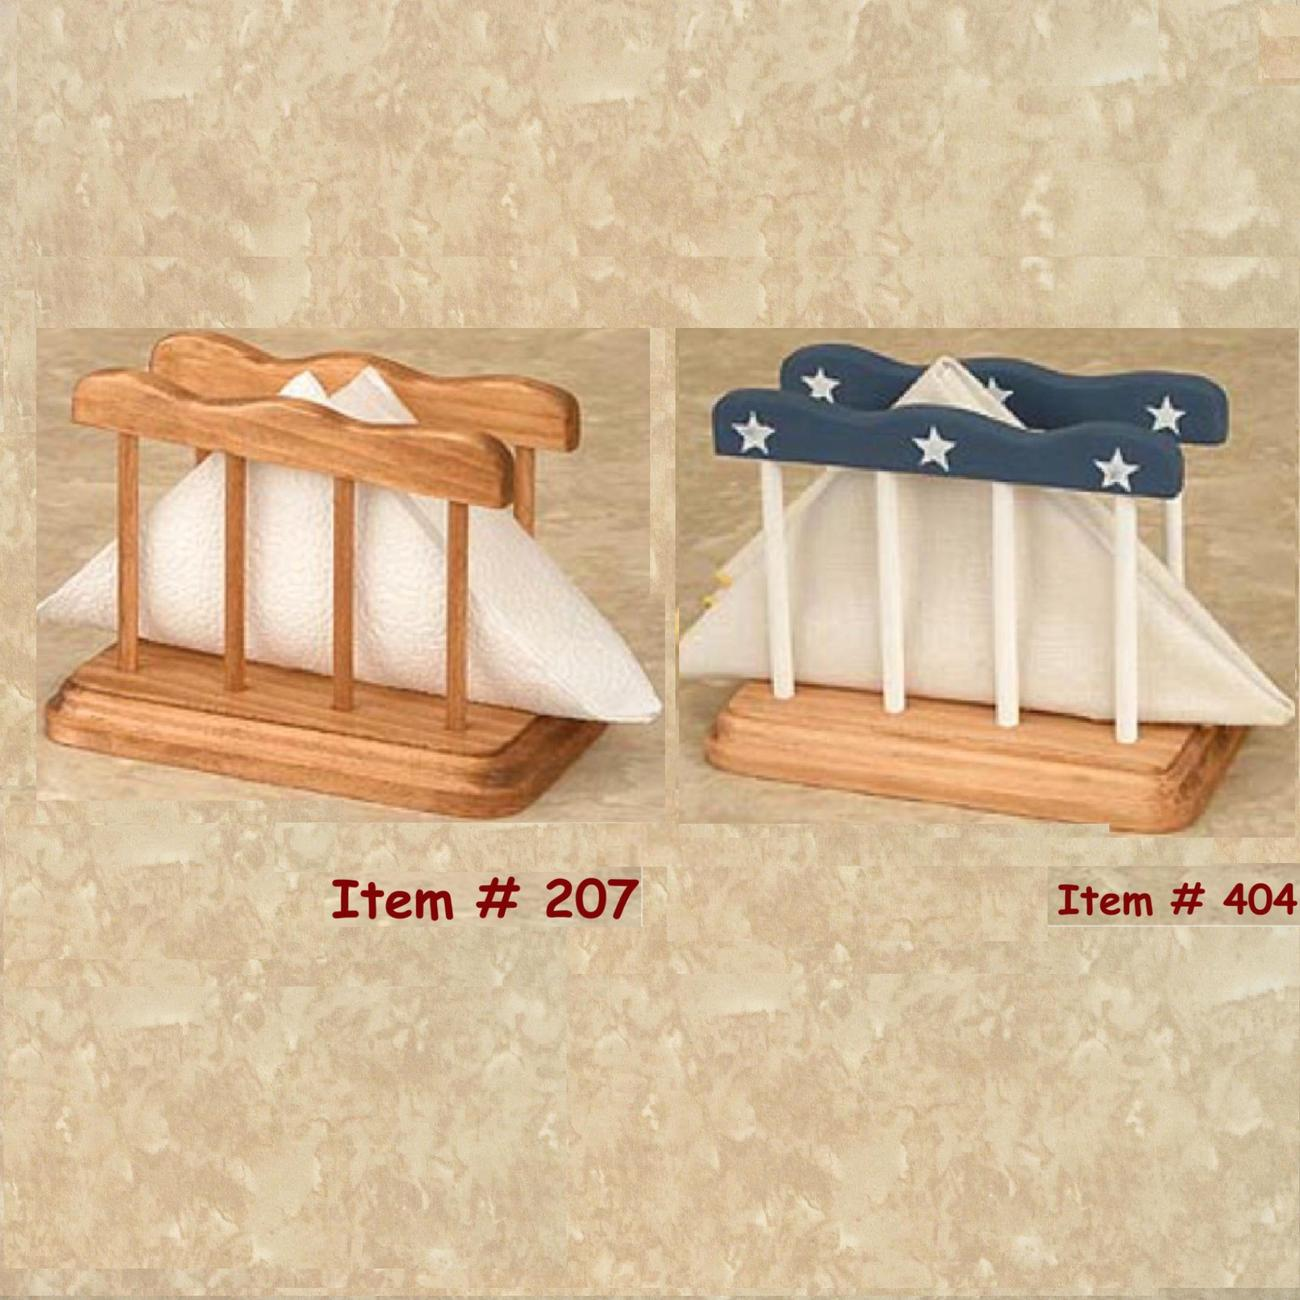 Mail Organizers - Letter Holders